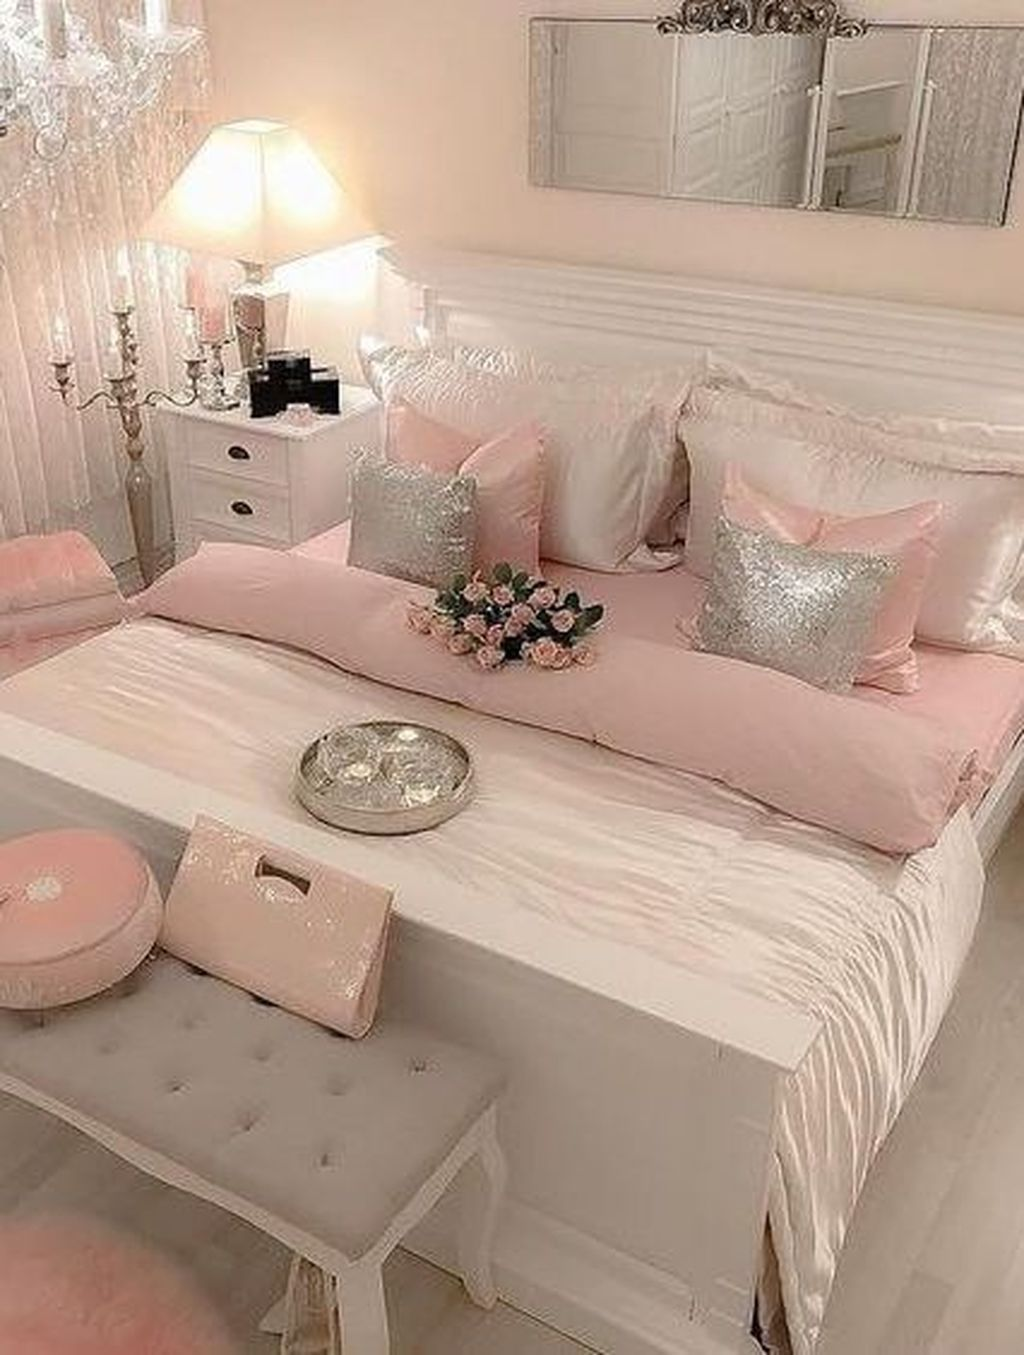 32 The Best Diy Bedroom Decor Ideas You Have To Try Pimphomee Girl Bedroom Decor Pink Bedroom Decor Bedroom Decor